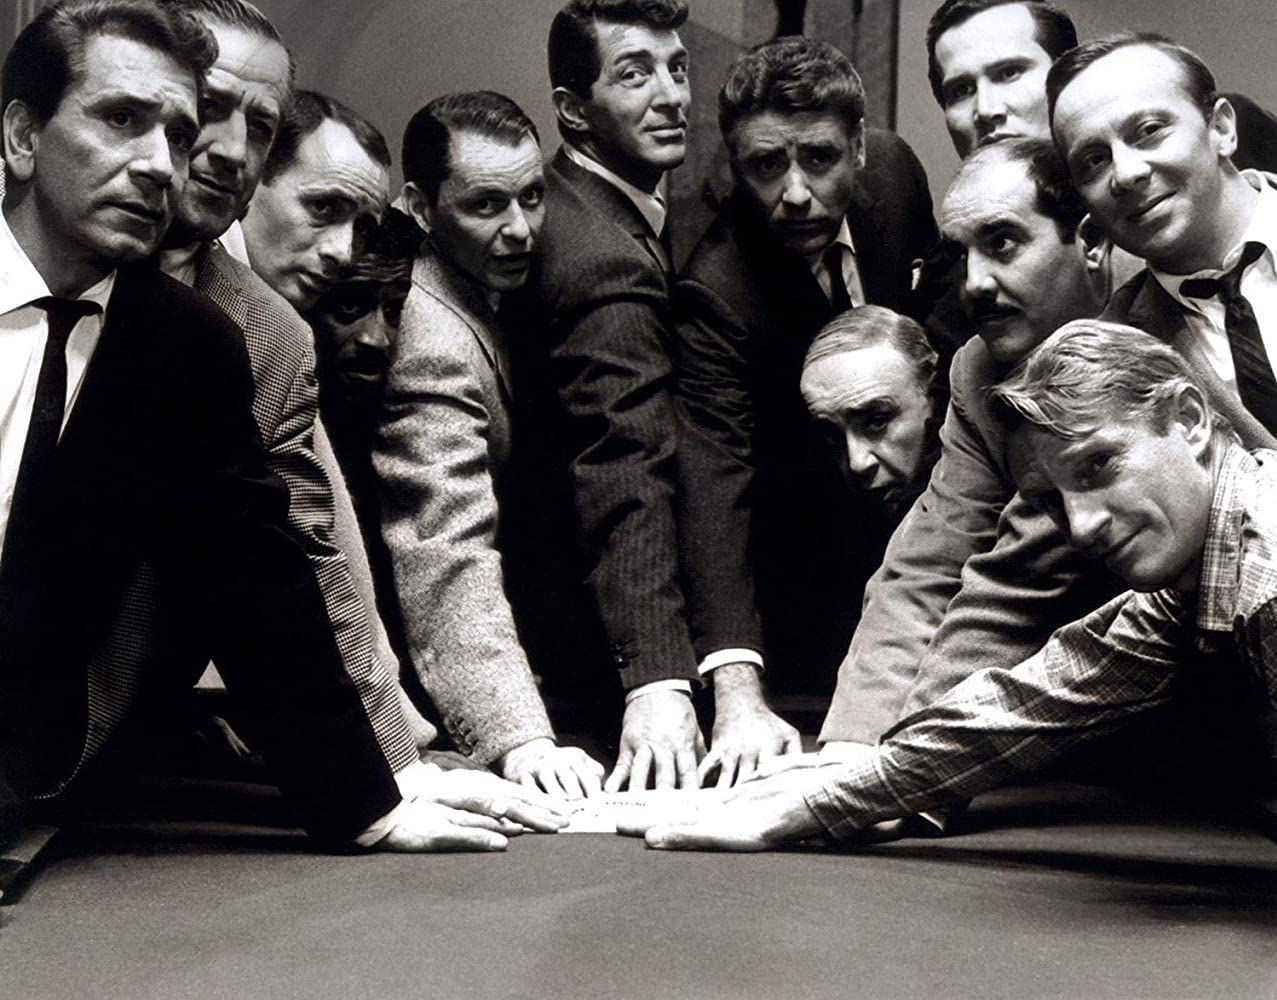 How does George Clooney's 'Ocean's Eleven' compare with Frank Sinatra's 'Ocean's 11'? Here's our comparison of 'Ocean's Eleven' and 'Ocean's 11'.